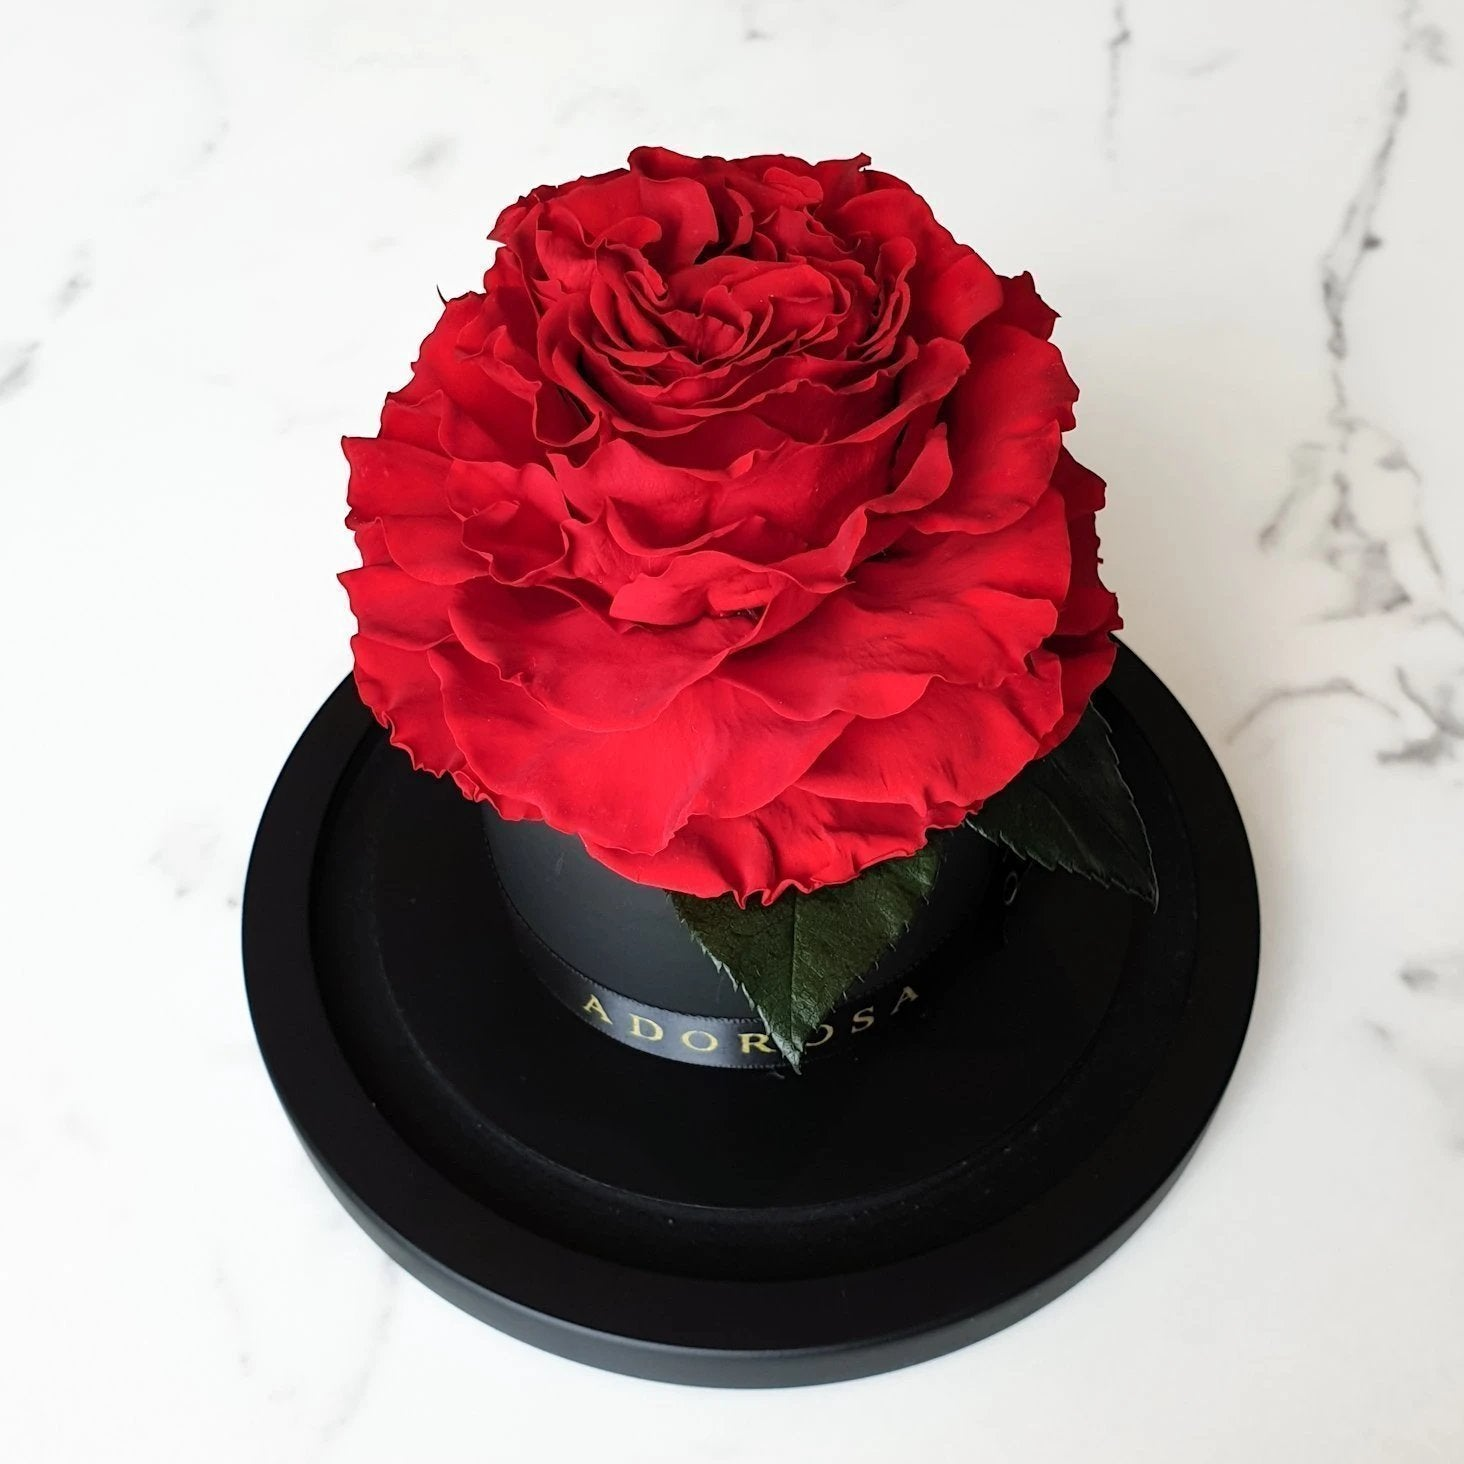 glass dome rose, long lasting rose, luxury rose sydney, rose delivery sydney